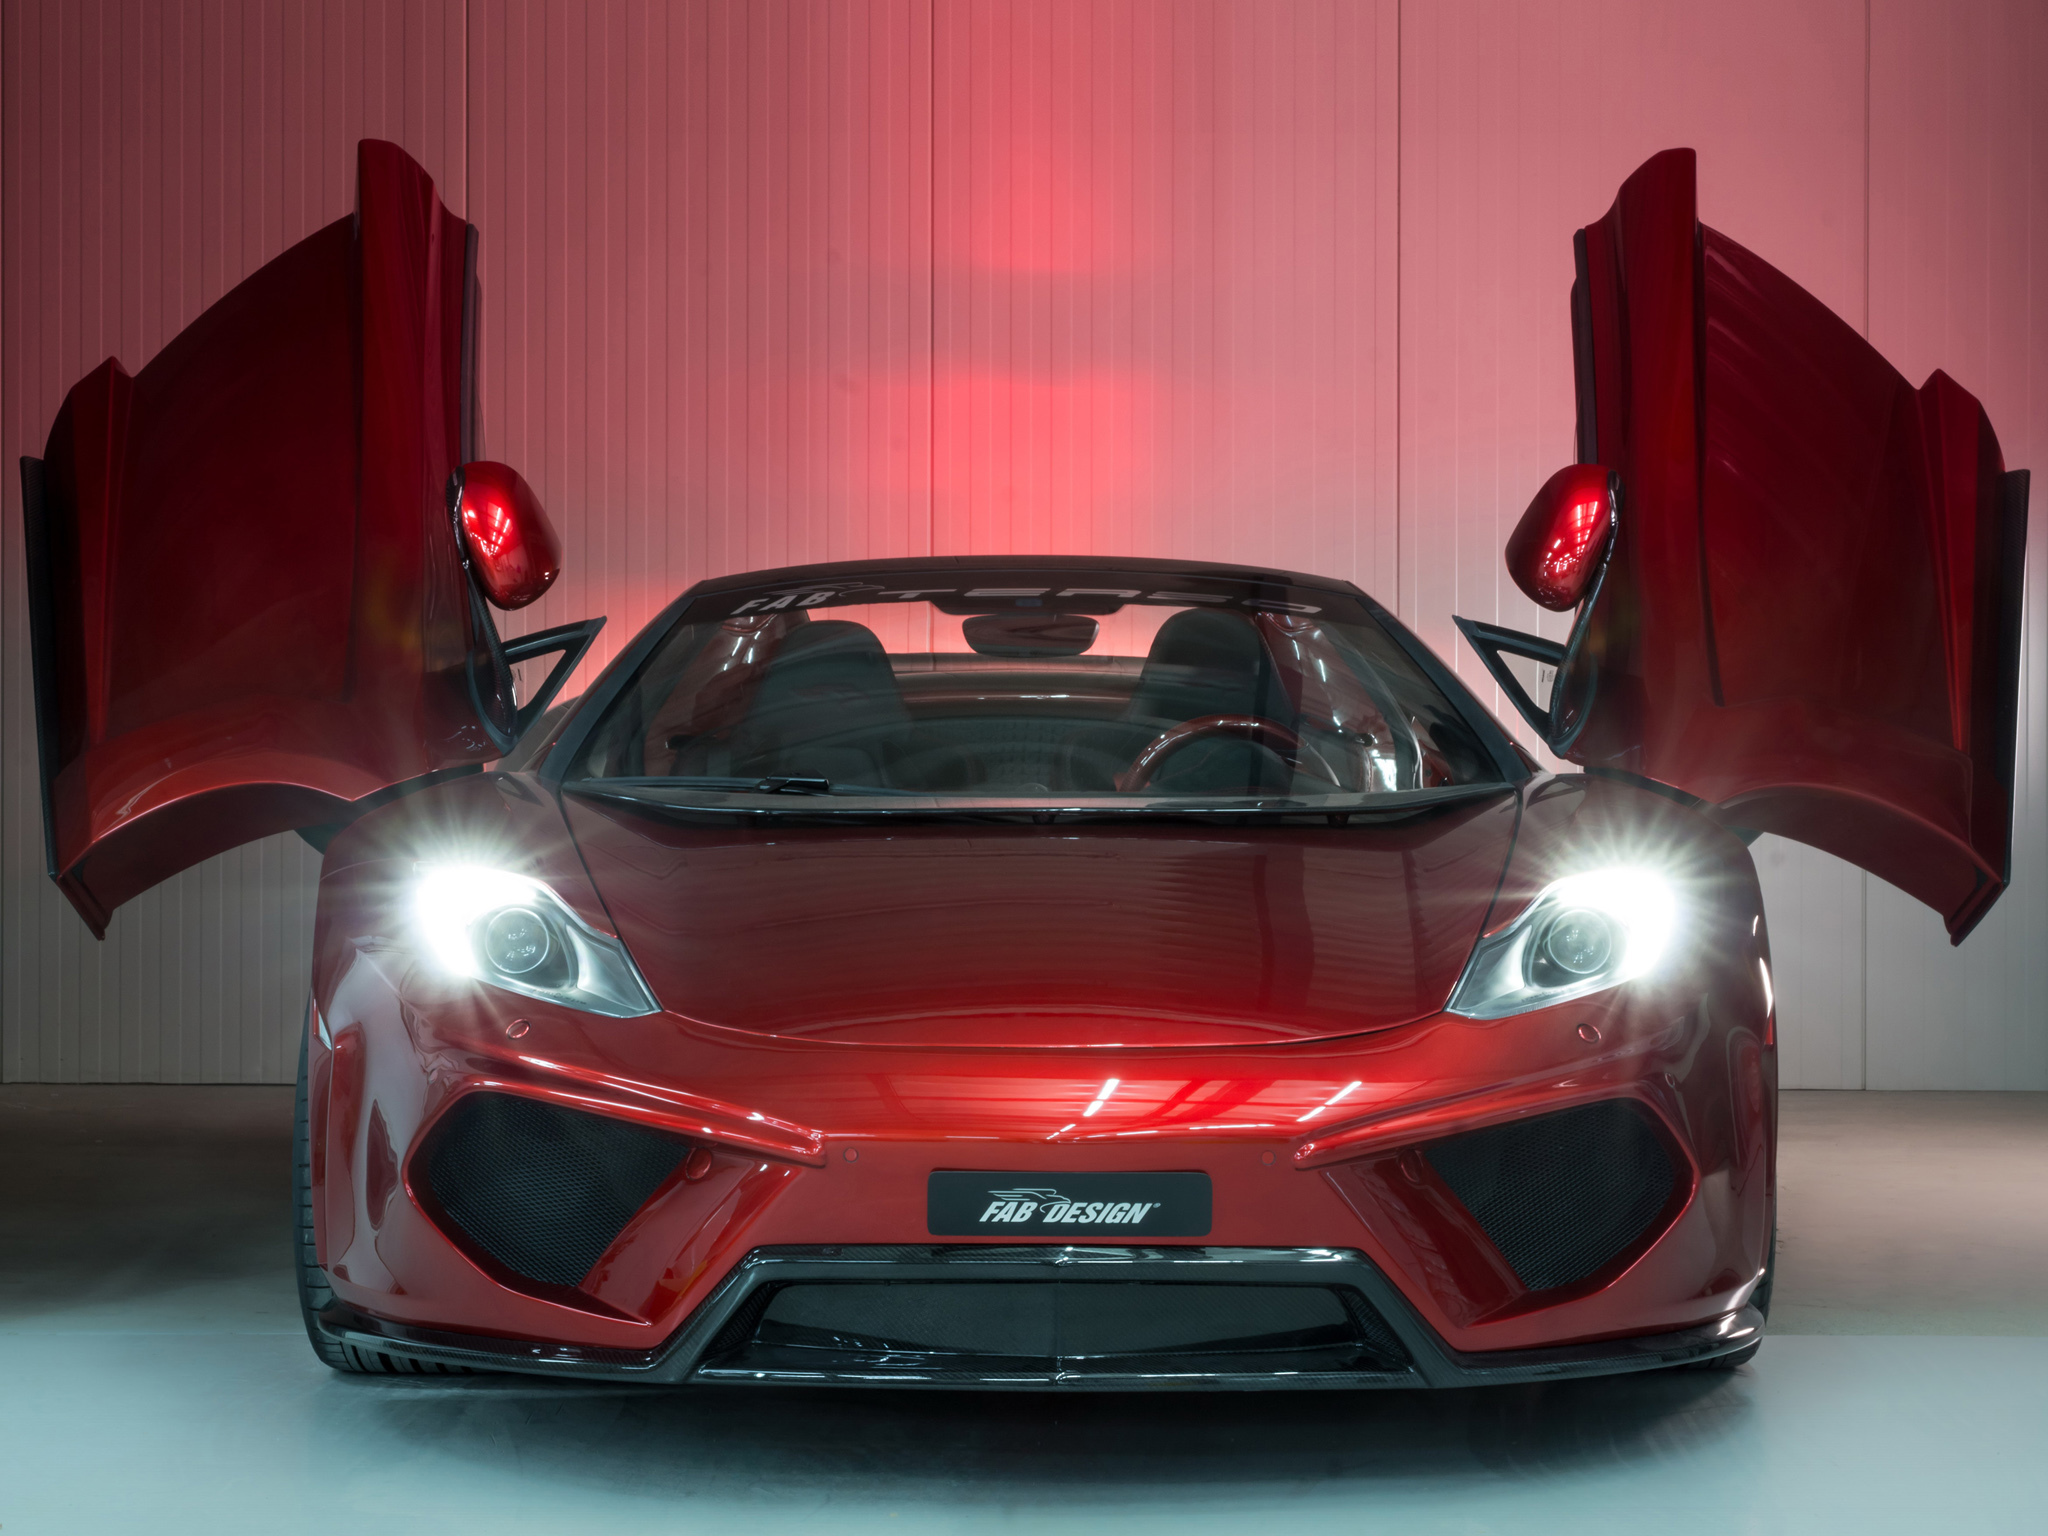 94779 Screensavers and Wallpapers Front View for phone. Download Cars, Front View, Supercar, Mclaren Mp4-12C pictures for free